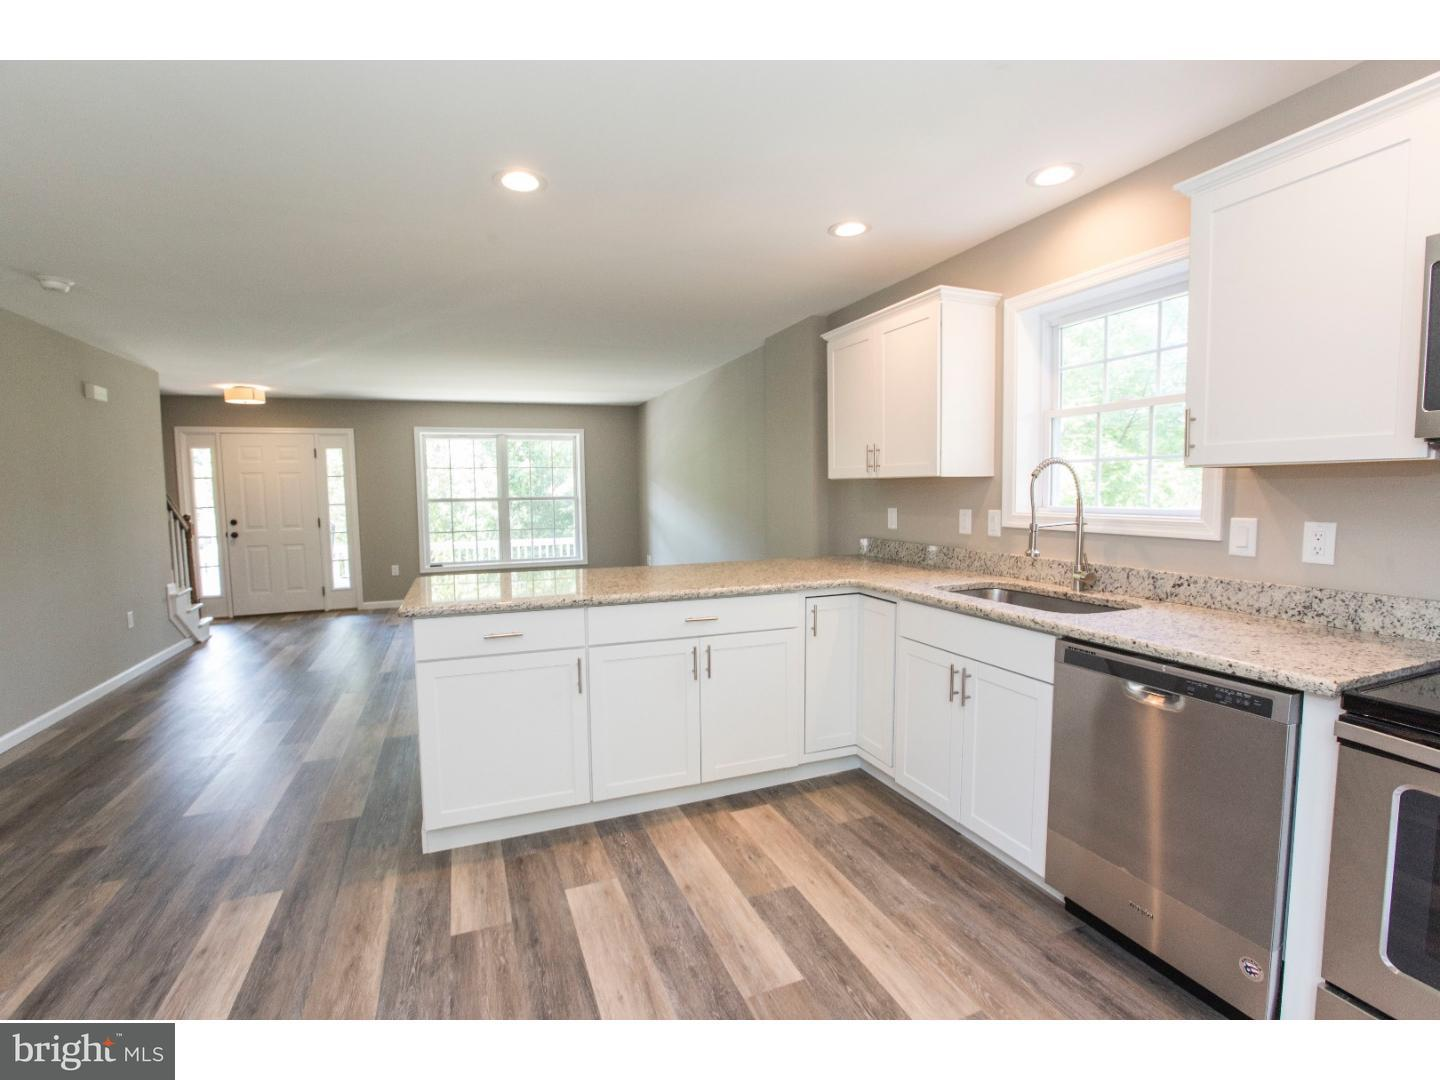 1065 FRITZTOWN RD, READING - Listed at $229,900, READING